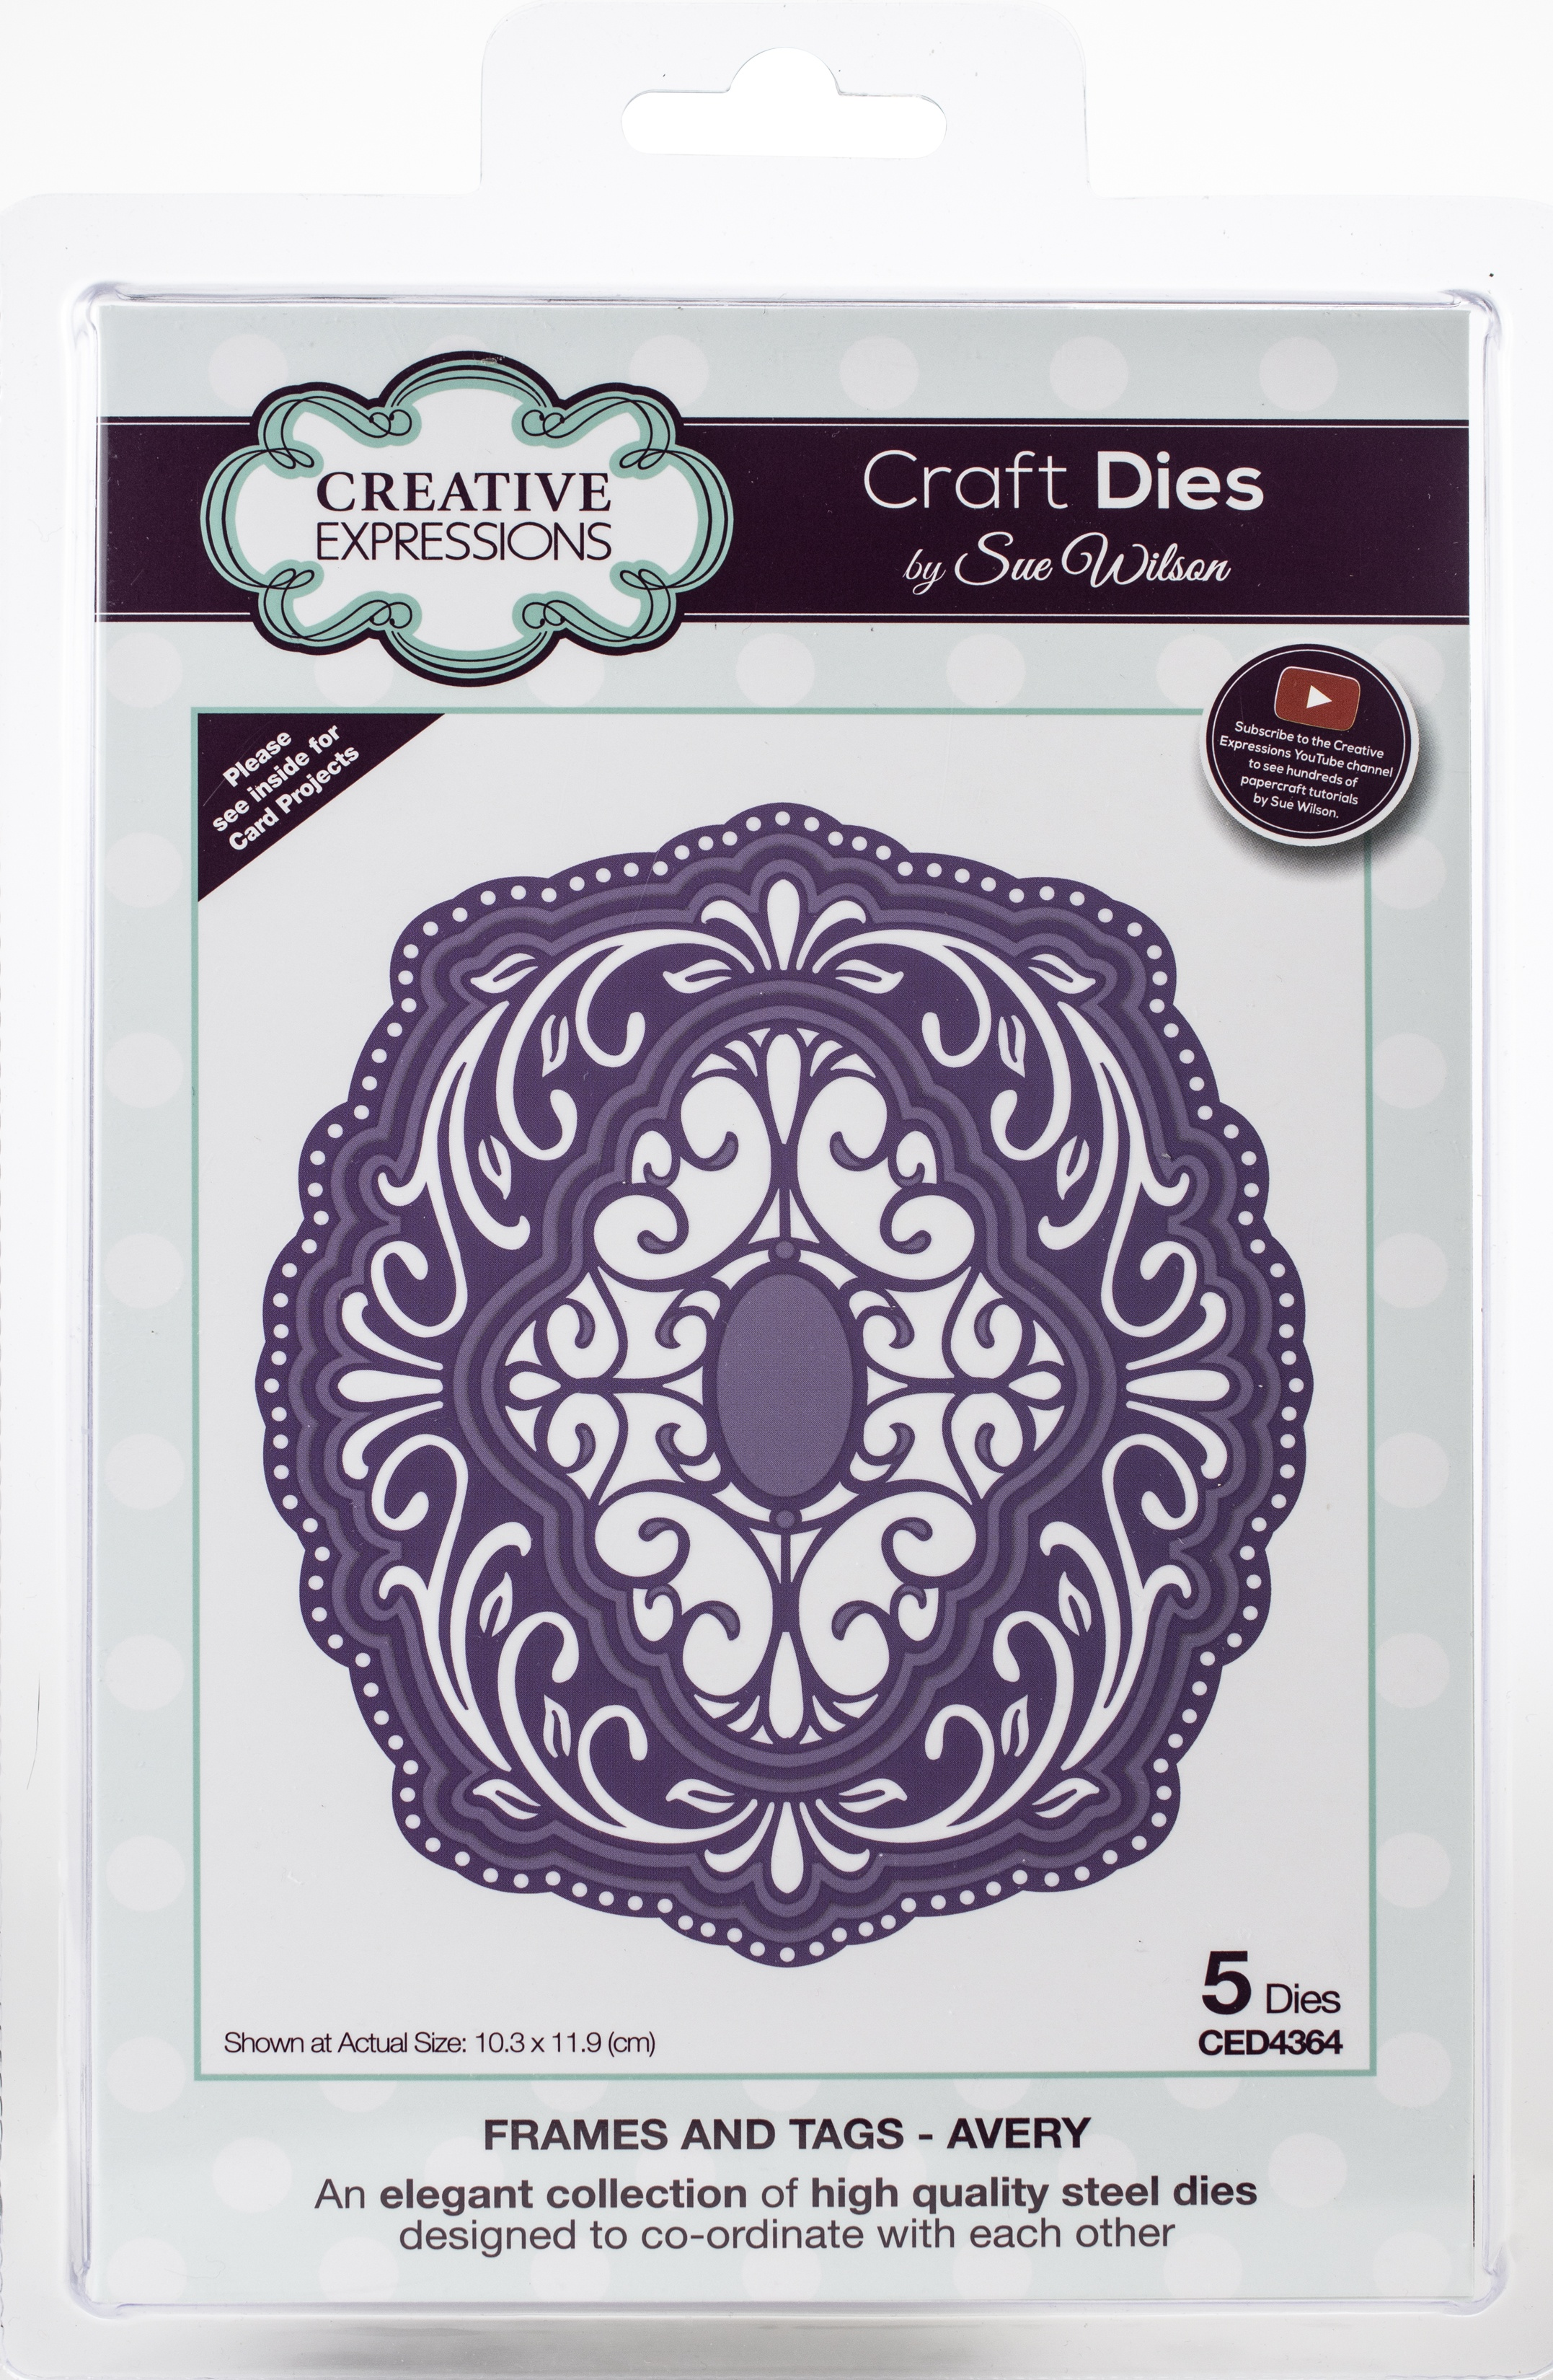 Creative Expressions Craft Dies By Sue Wilson-Frames & Tags-Avery